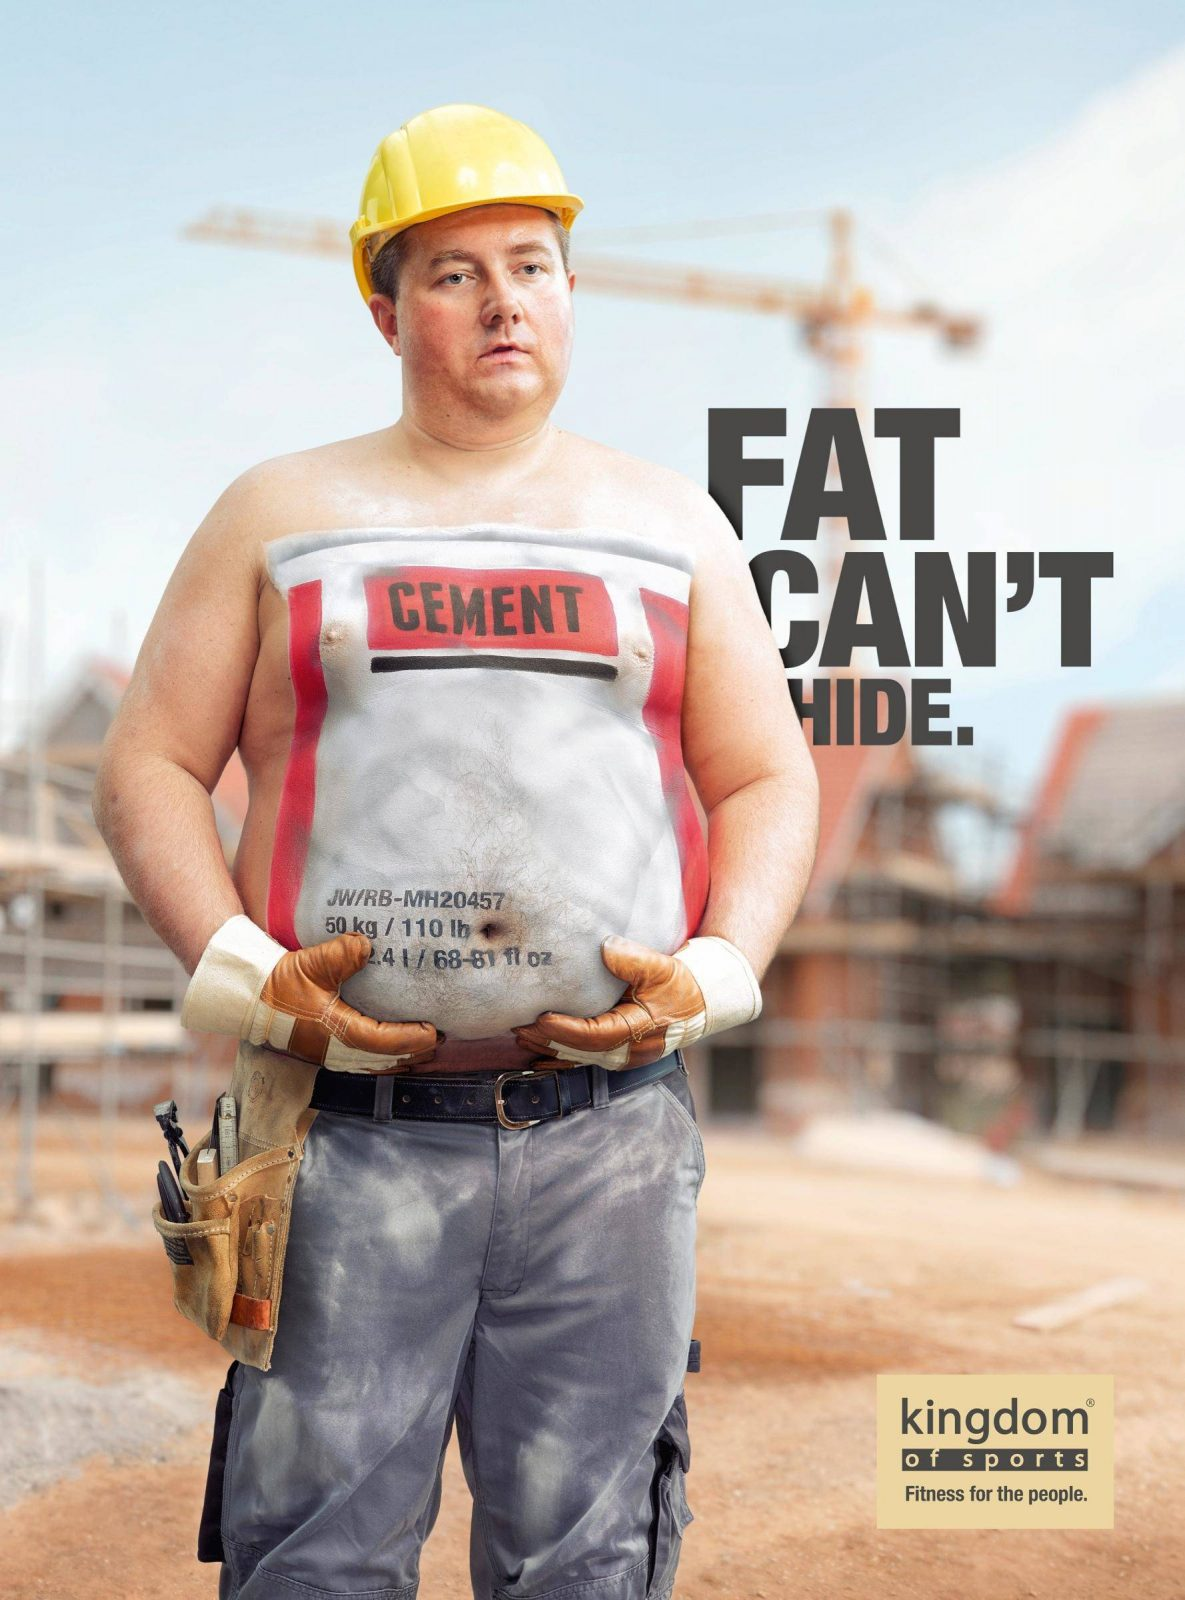 Fat can't hide. Kingdom of Sports Campaign Advertising